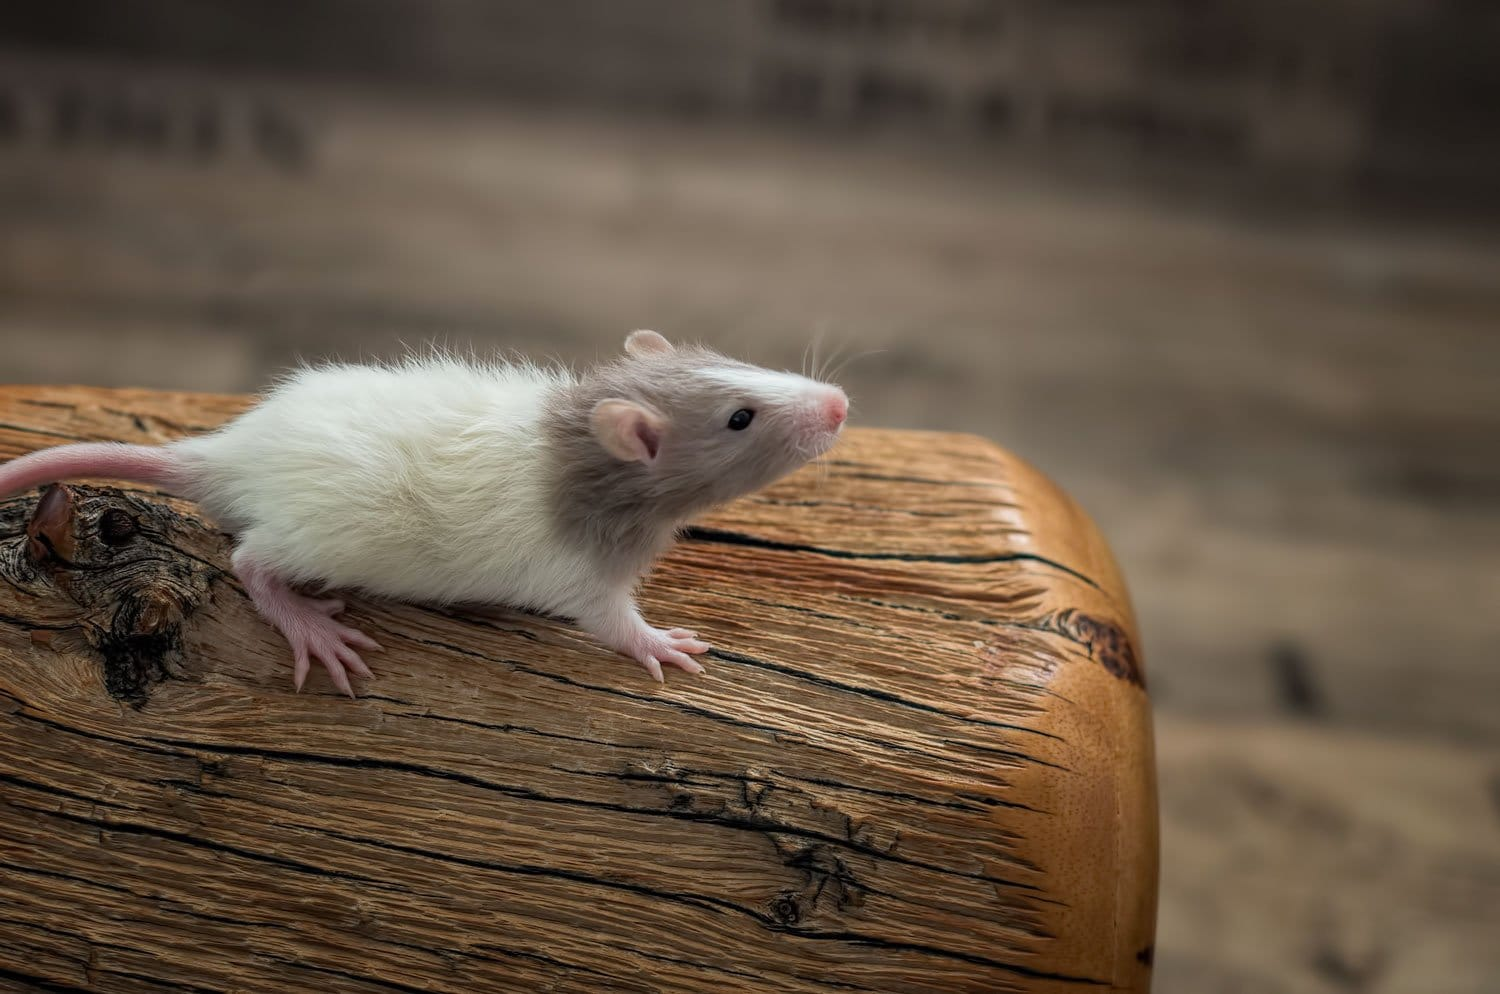 Ratten C-Wurf 23.07.2017 Caiside